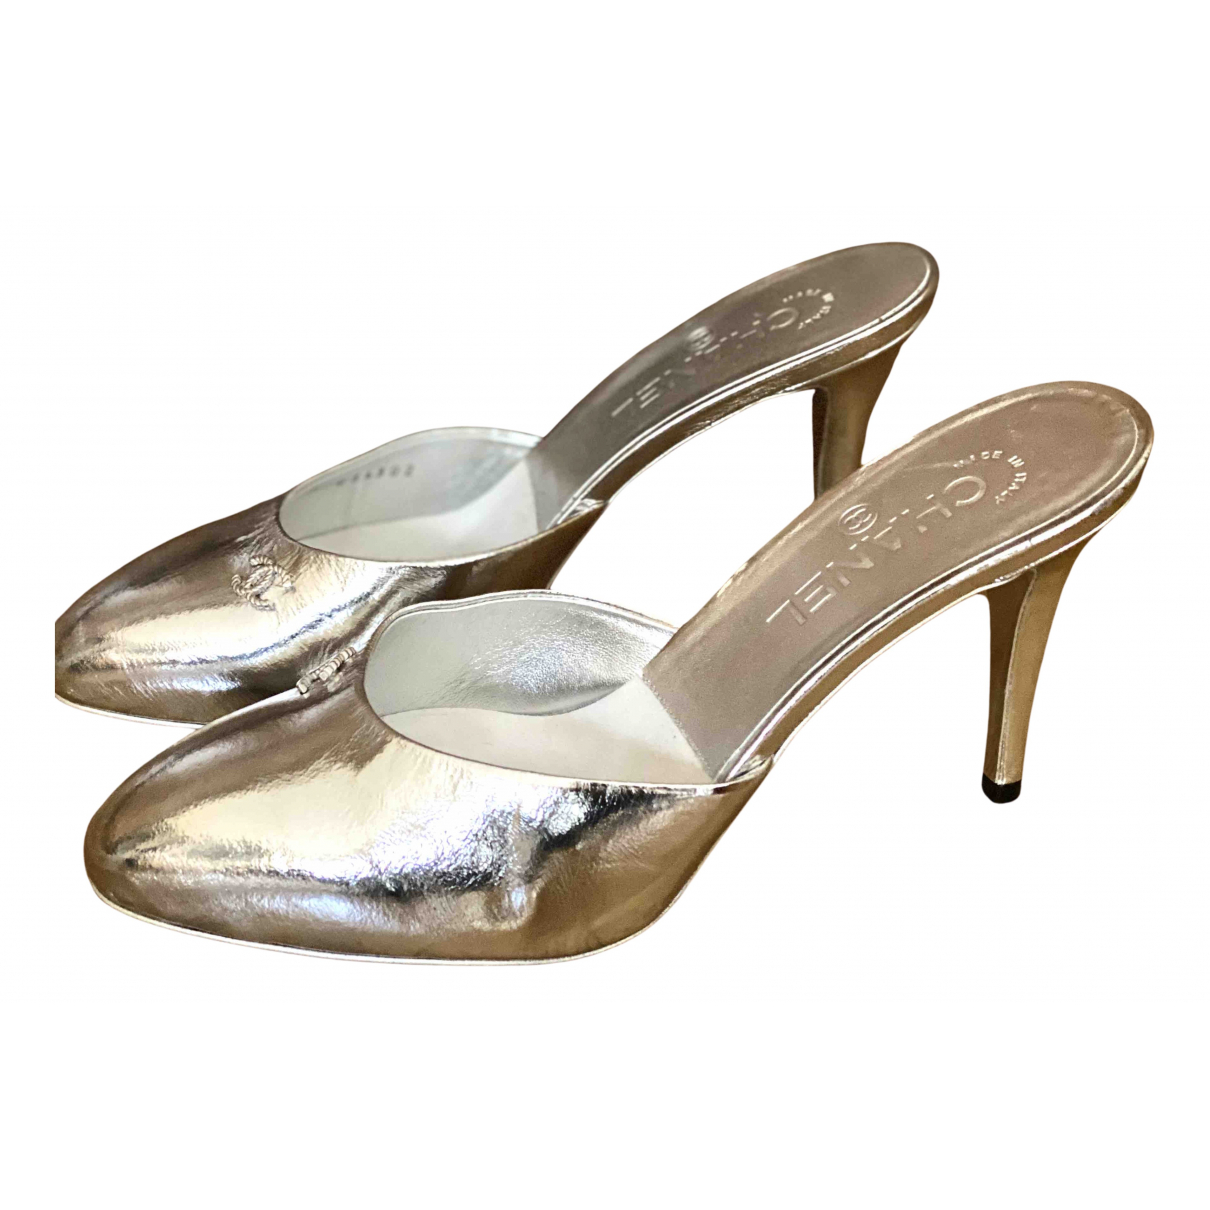 Chanel N Silver Leather Sandals for Women 39 EU